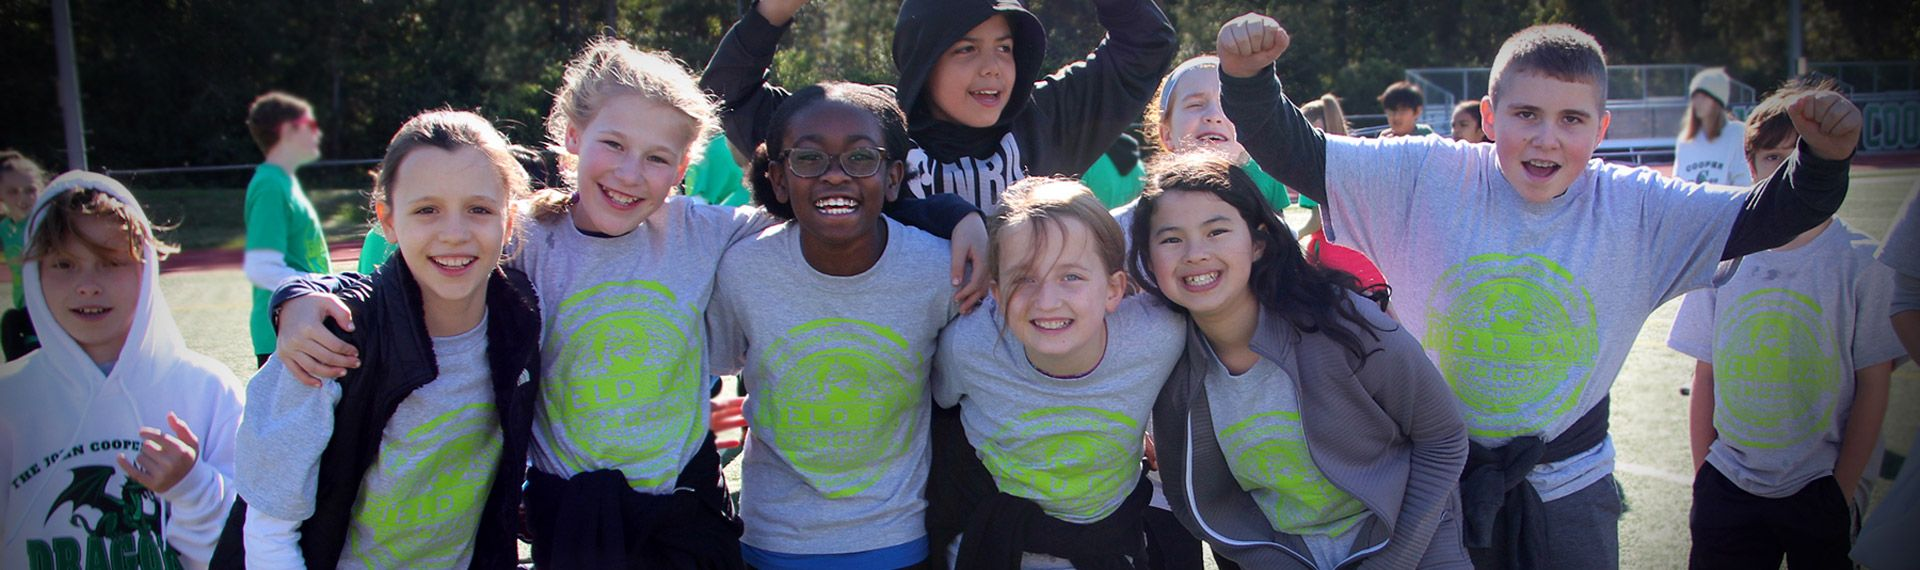 Middle School students pose at field day.